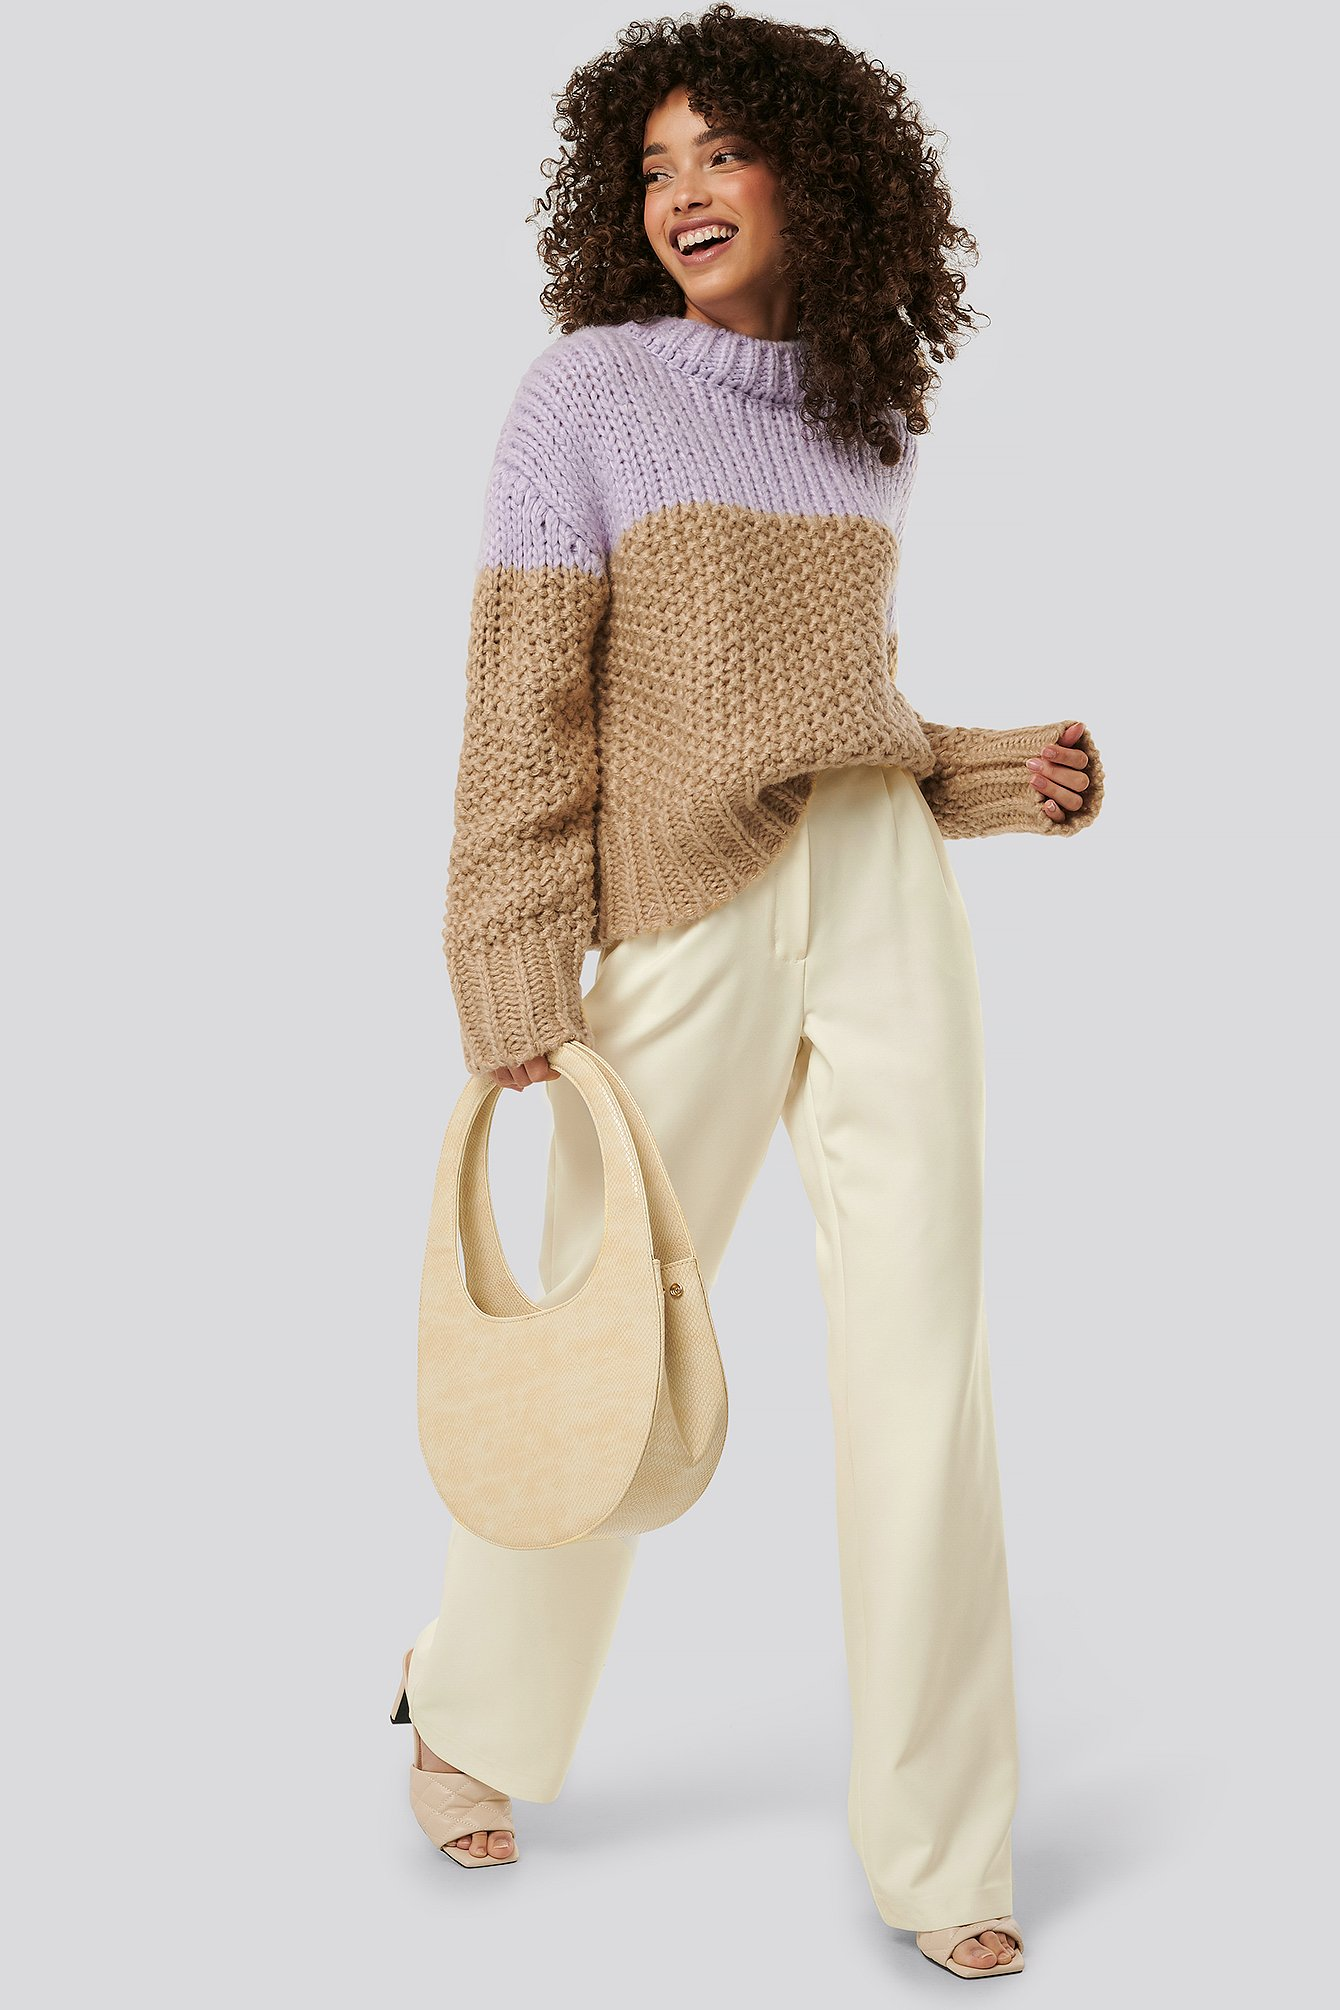 na-kd accessories -  Top Handle Moon Bag - Beige